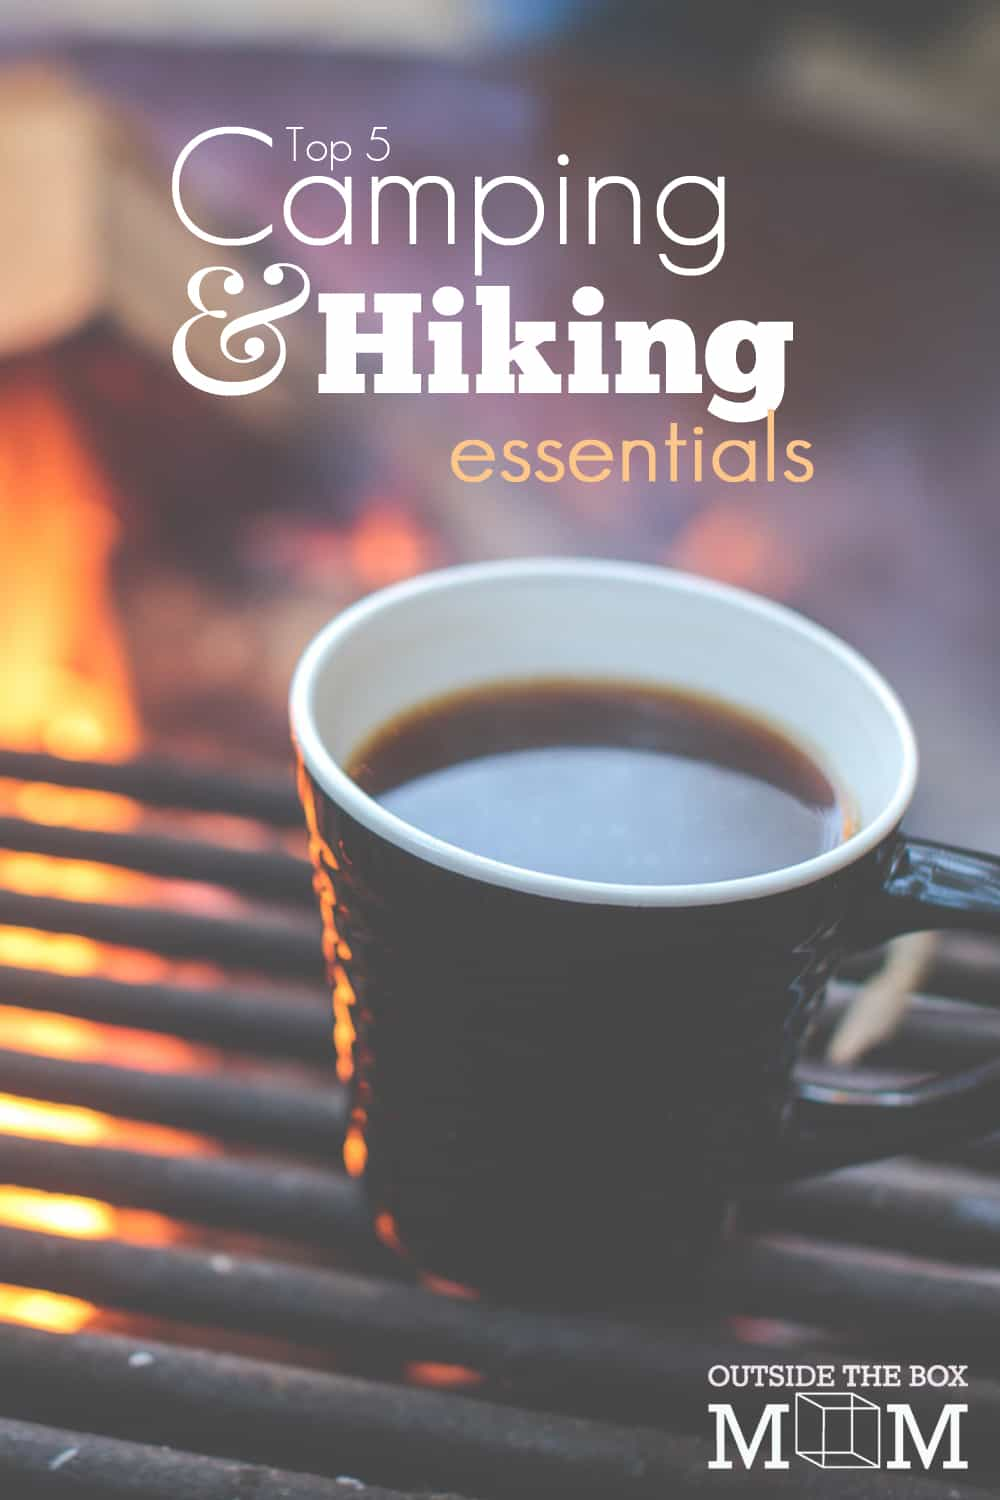 This checklist of the essentials is exactly what I needed for our next camping or hiking trip. Our trip will be safer, more fun, and easier to enjoy!